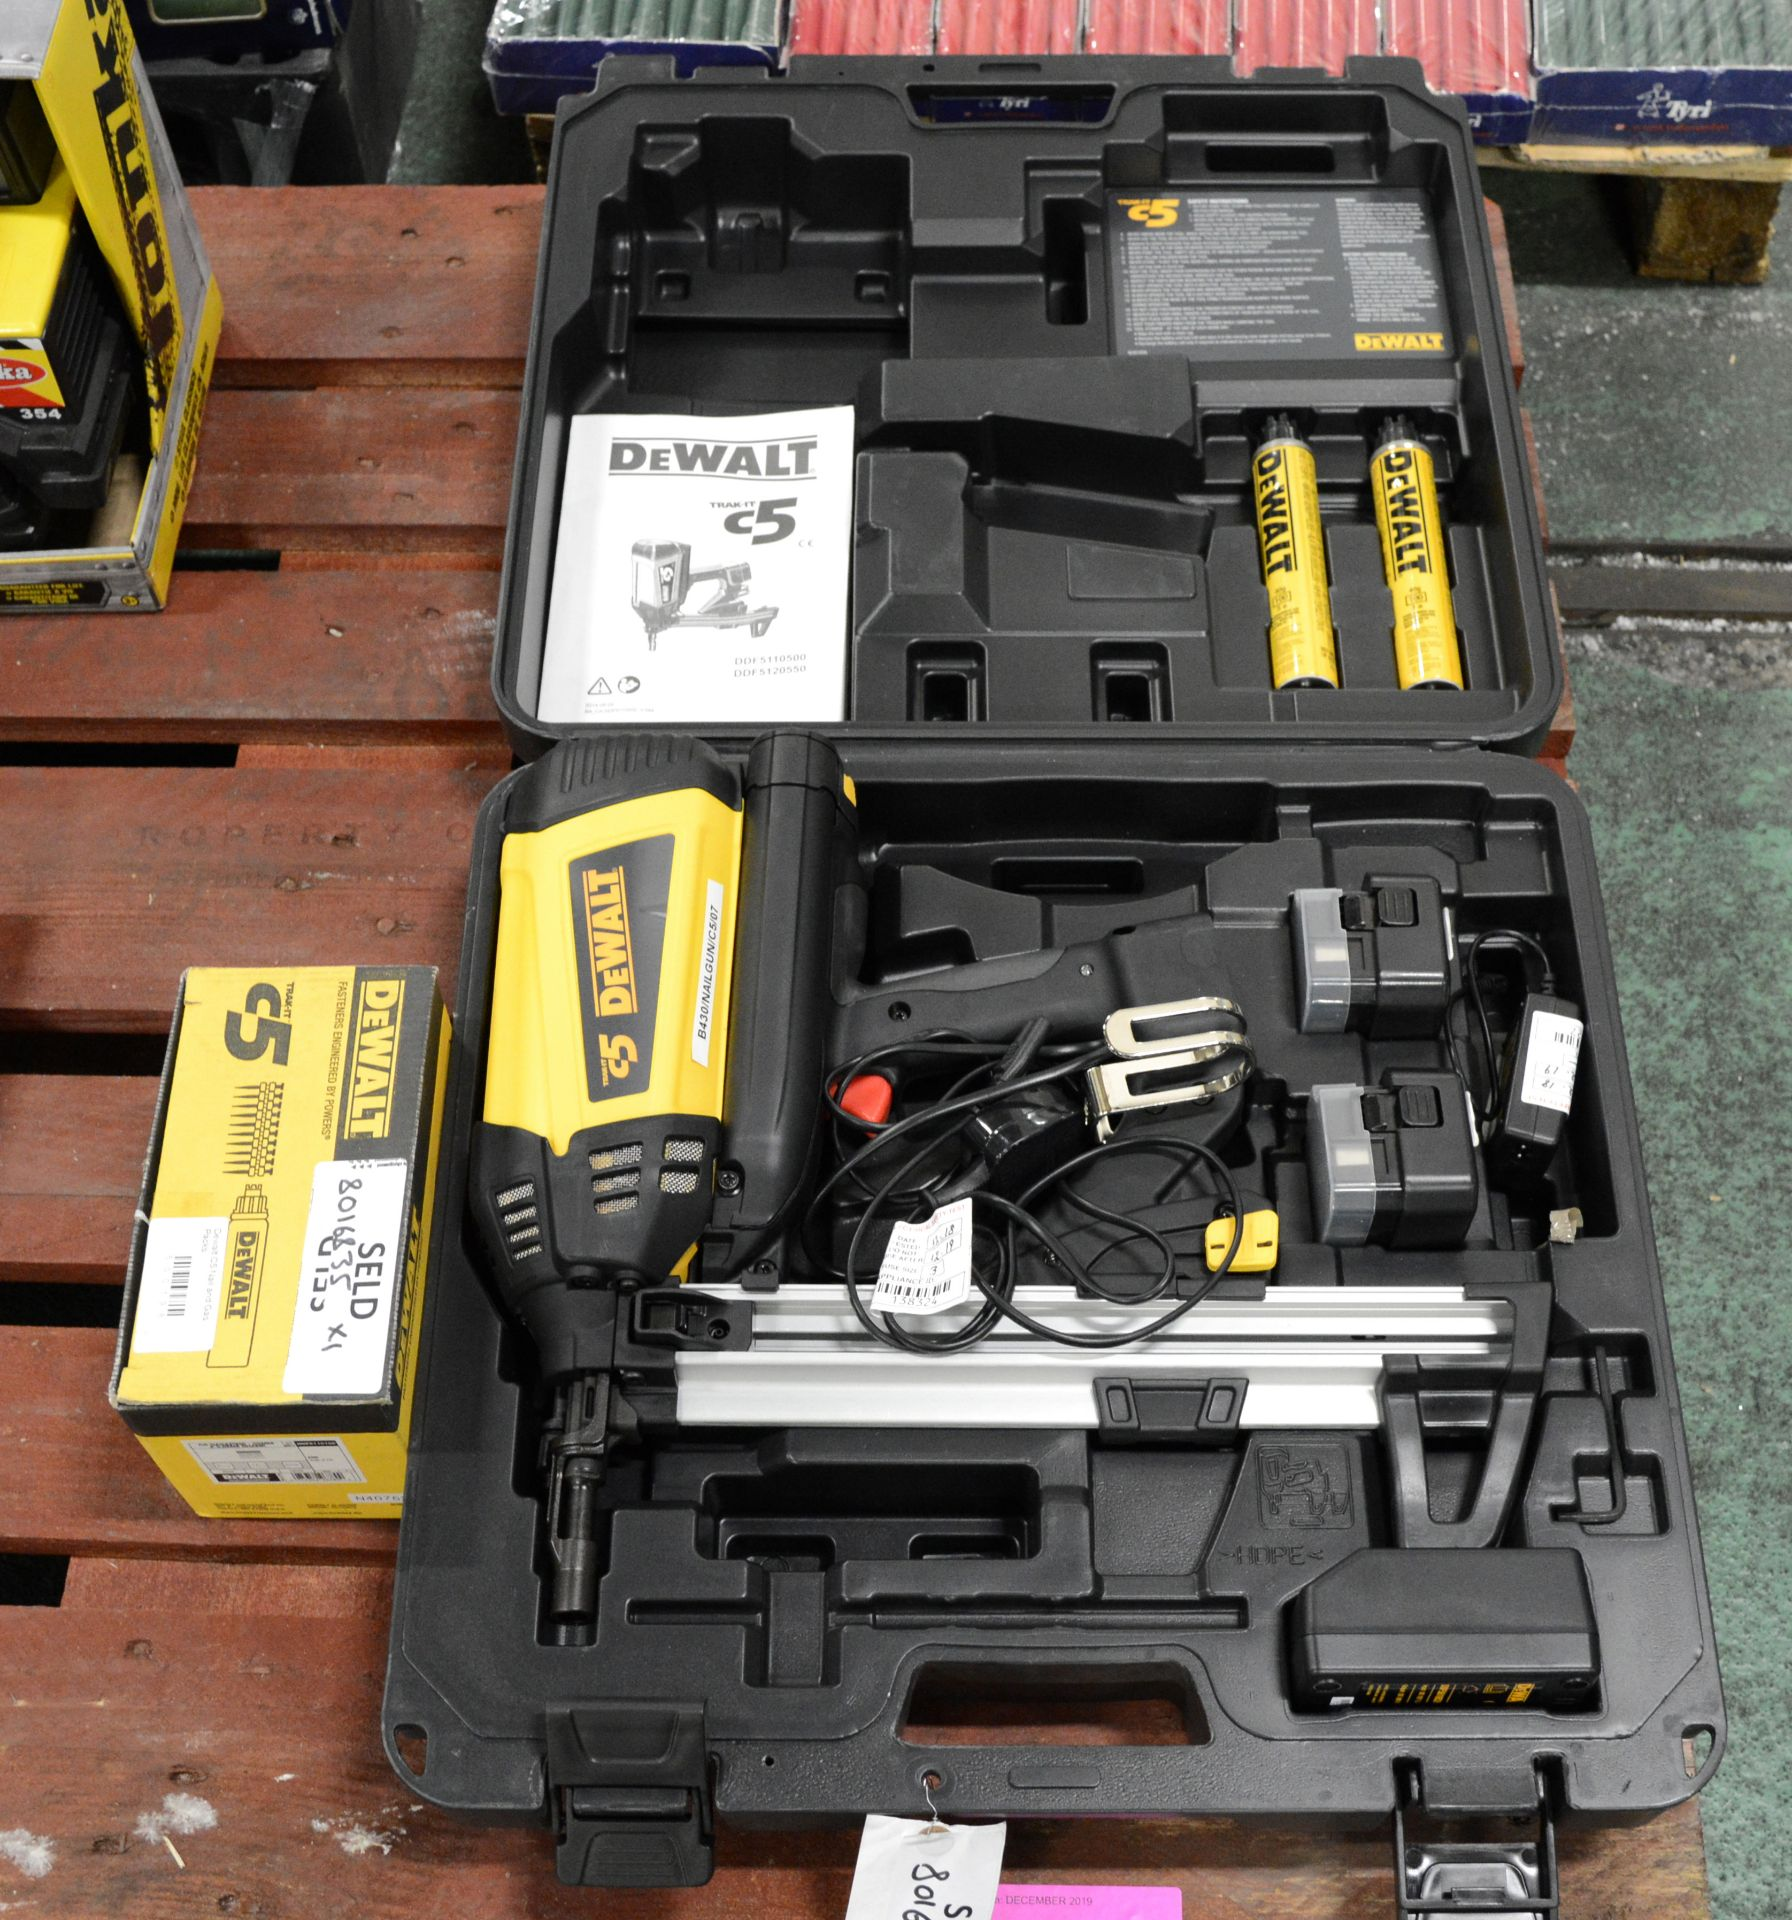 Lot 1722 - DeWalt C5 Trak-It Gas Actuated Nail Gun with Nails & Gas Cartridges.